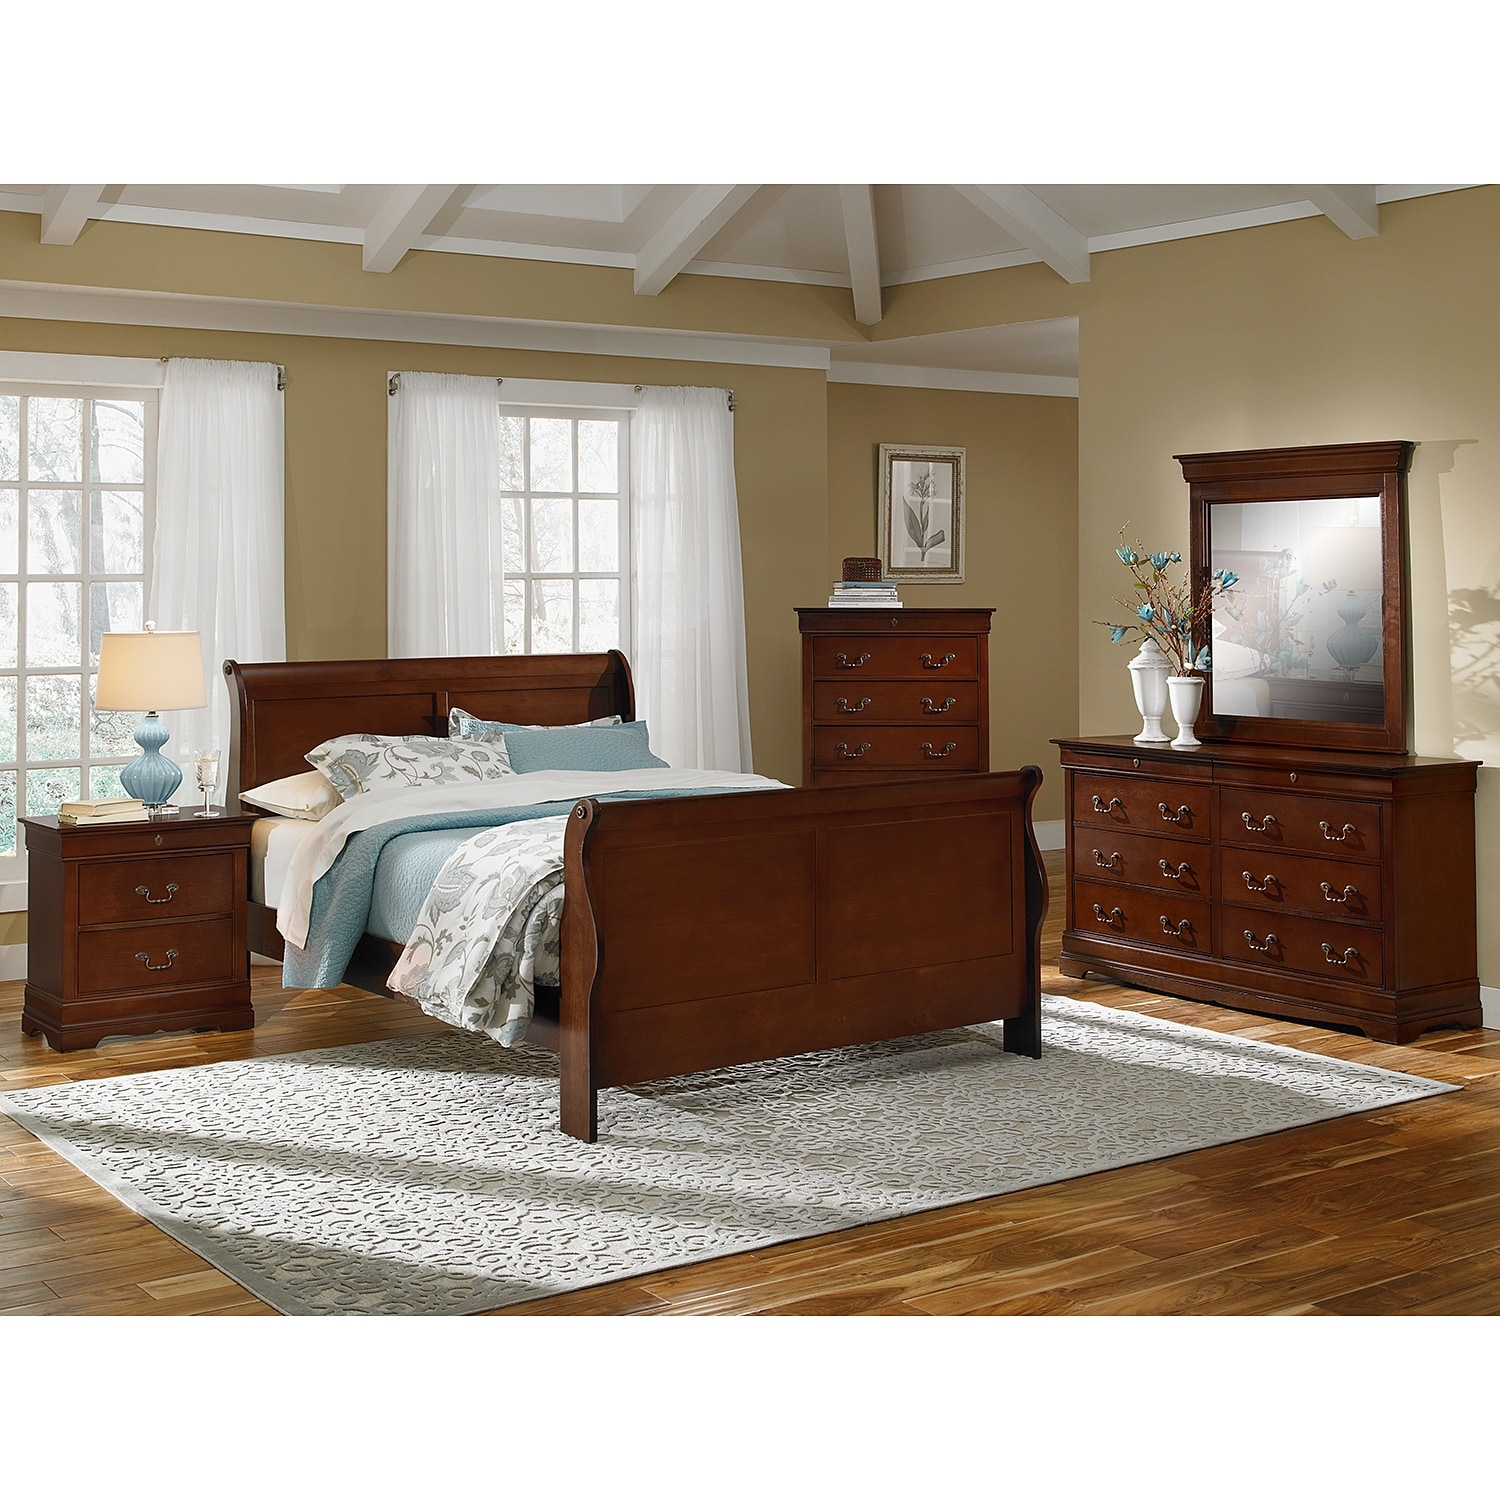 Bedroom Furniture - Neo Classic 7-Piece Queen Bedroom Set - Cherry